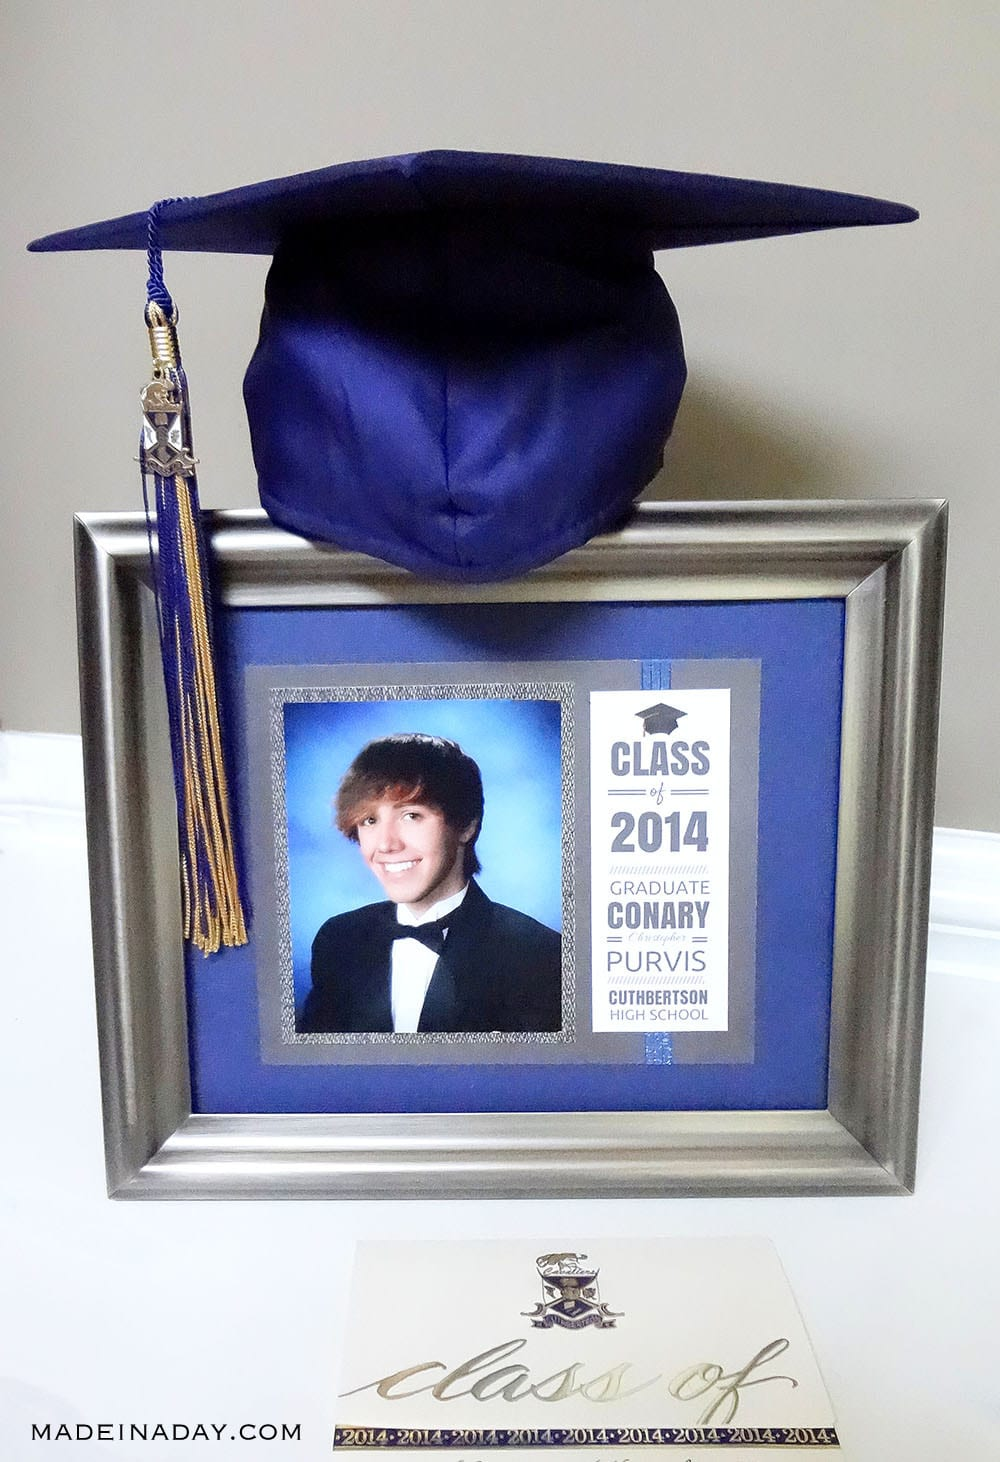 How to Make a Matted Graduation Keepsake Announcement, inexpensive graduation gift